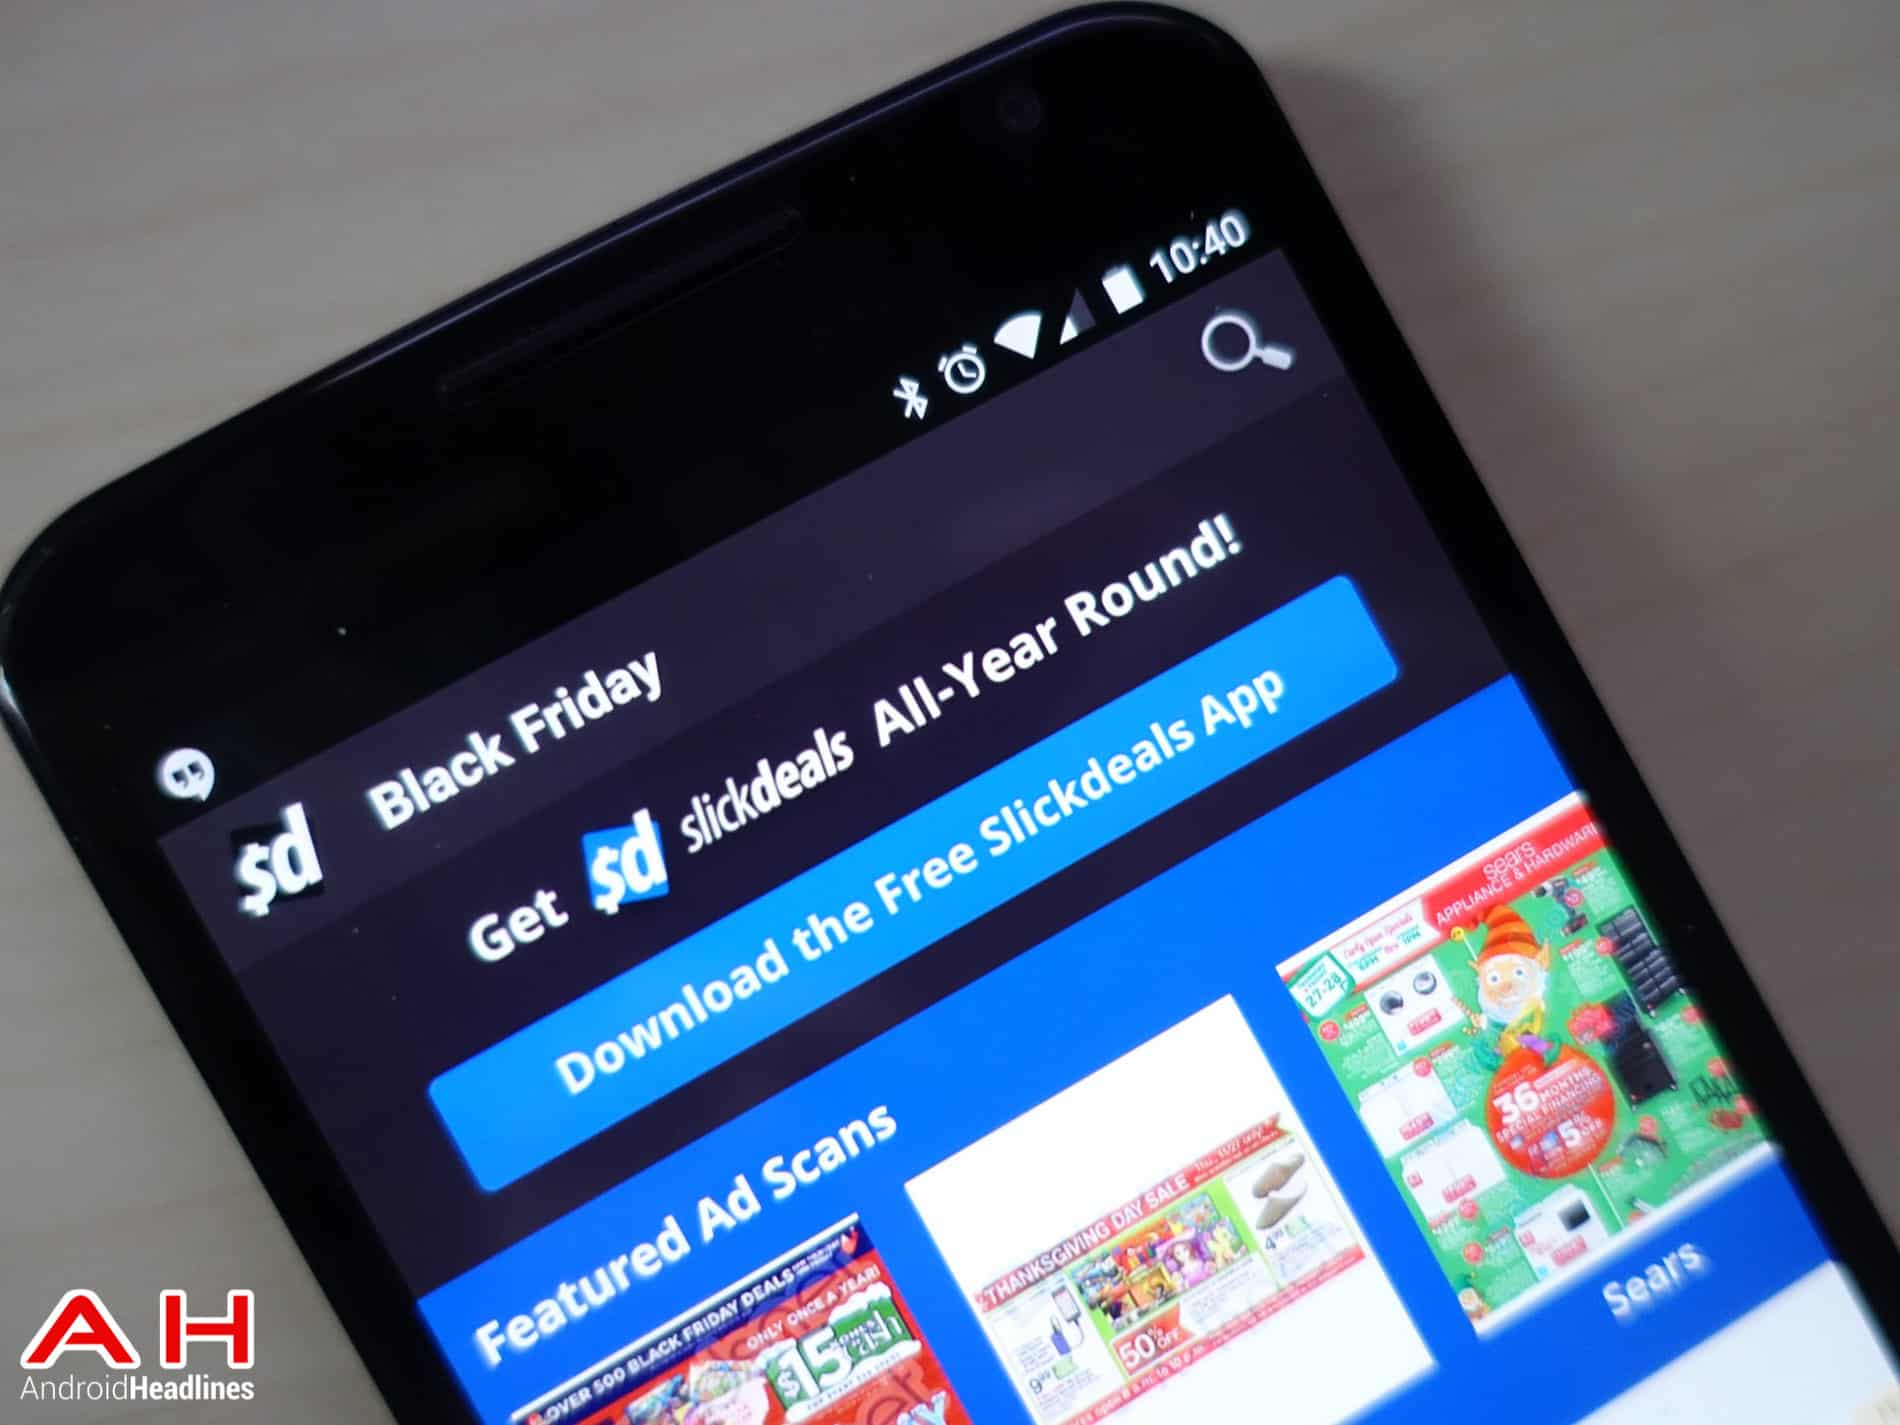 Ah Black Friday Featured Top 10 Best Black Friday Deals Apps For Android